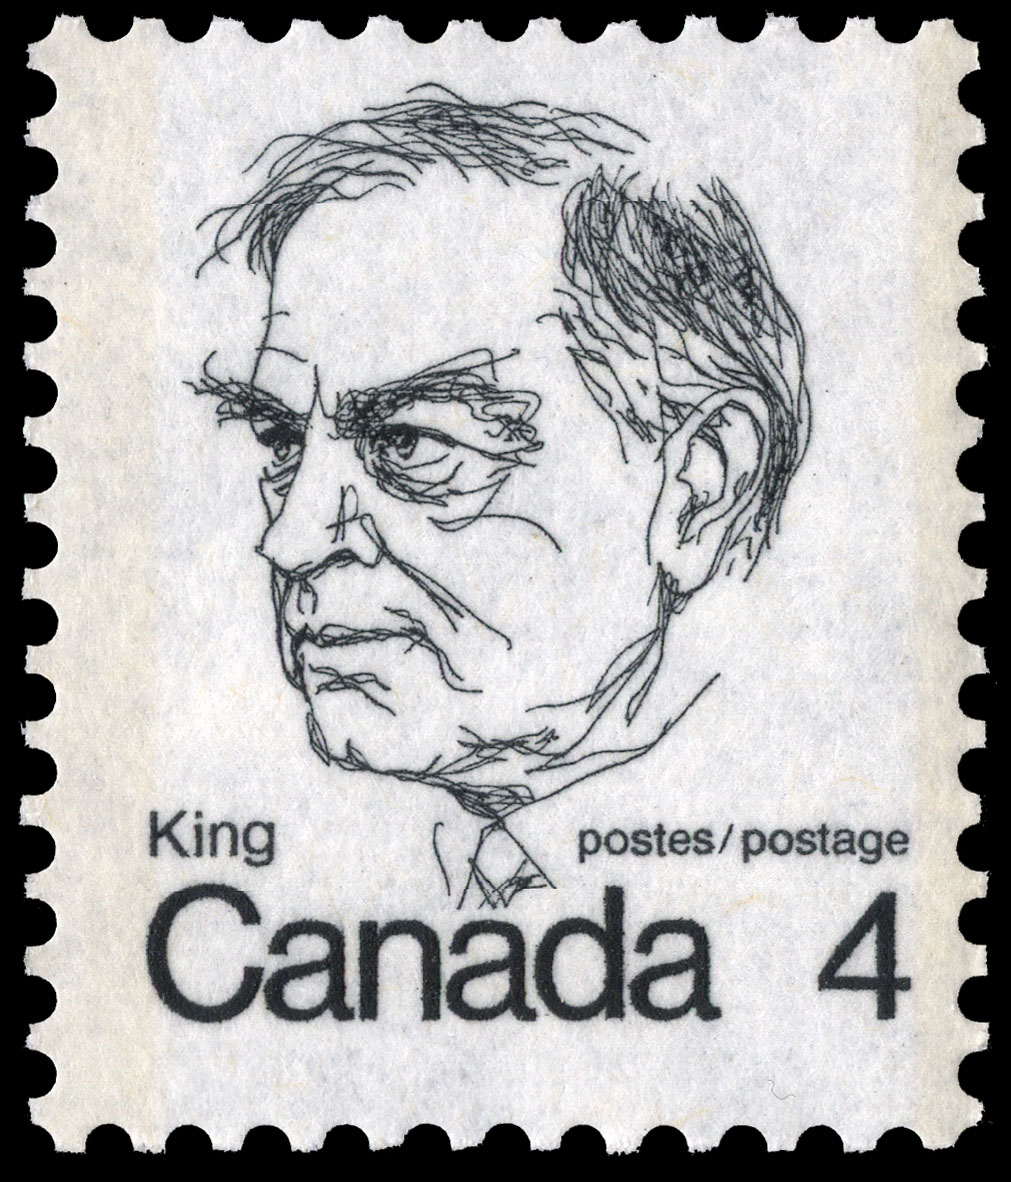 King Canada Postage Stamp | Caricature Definitives